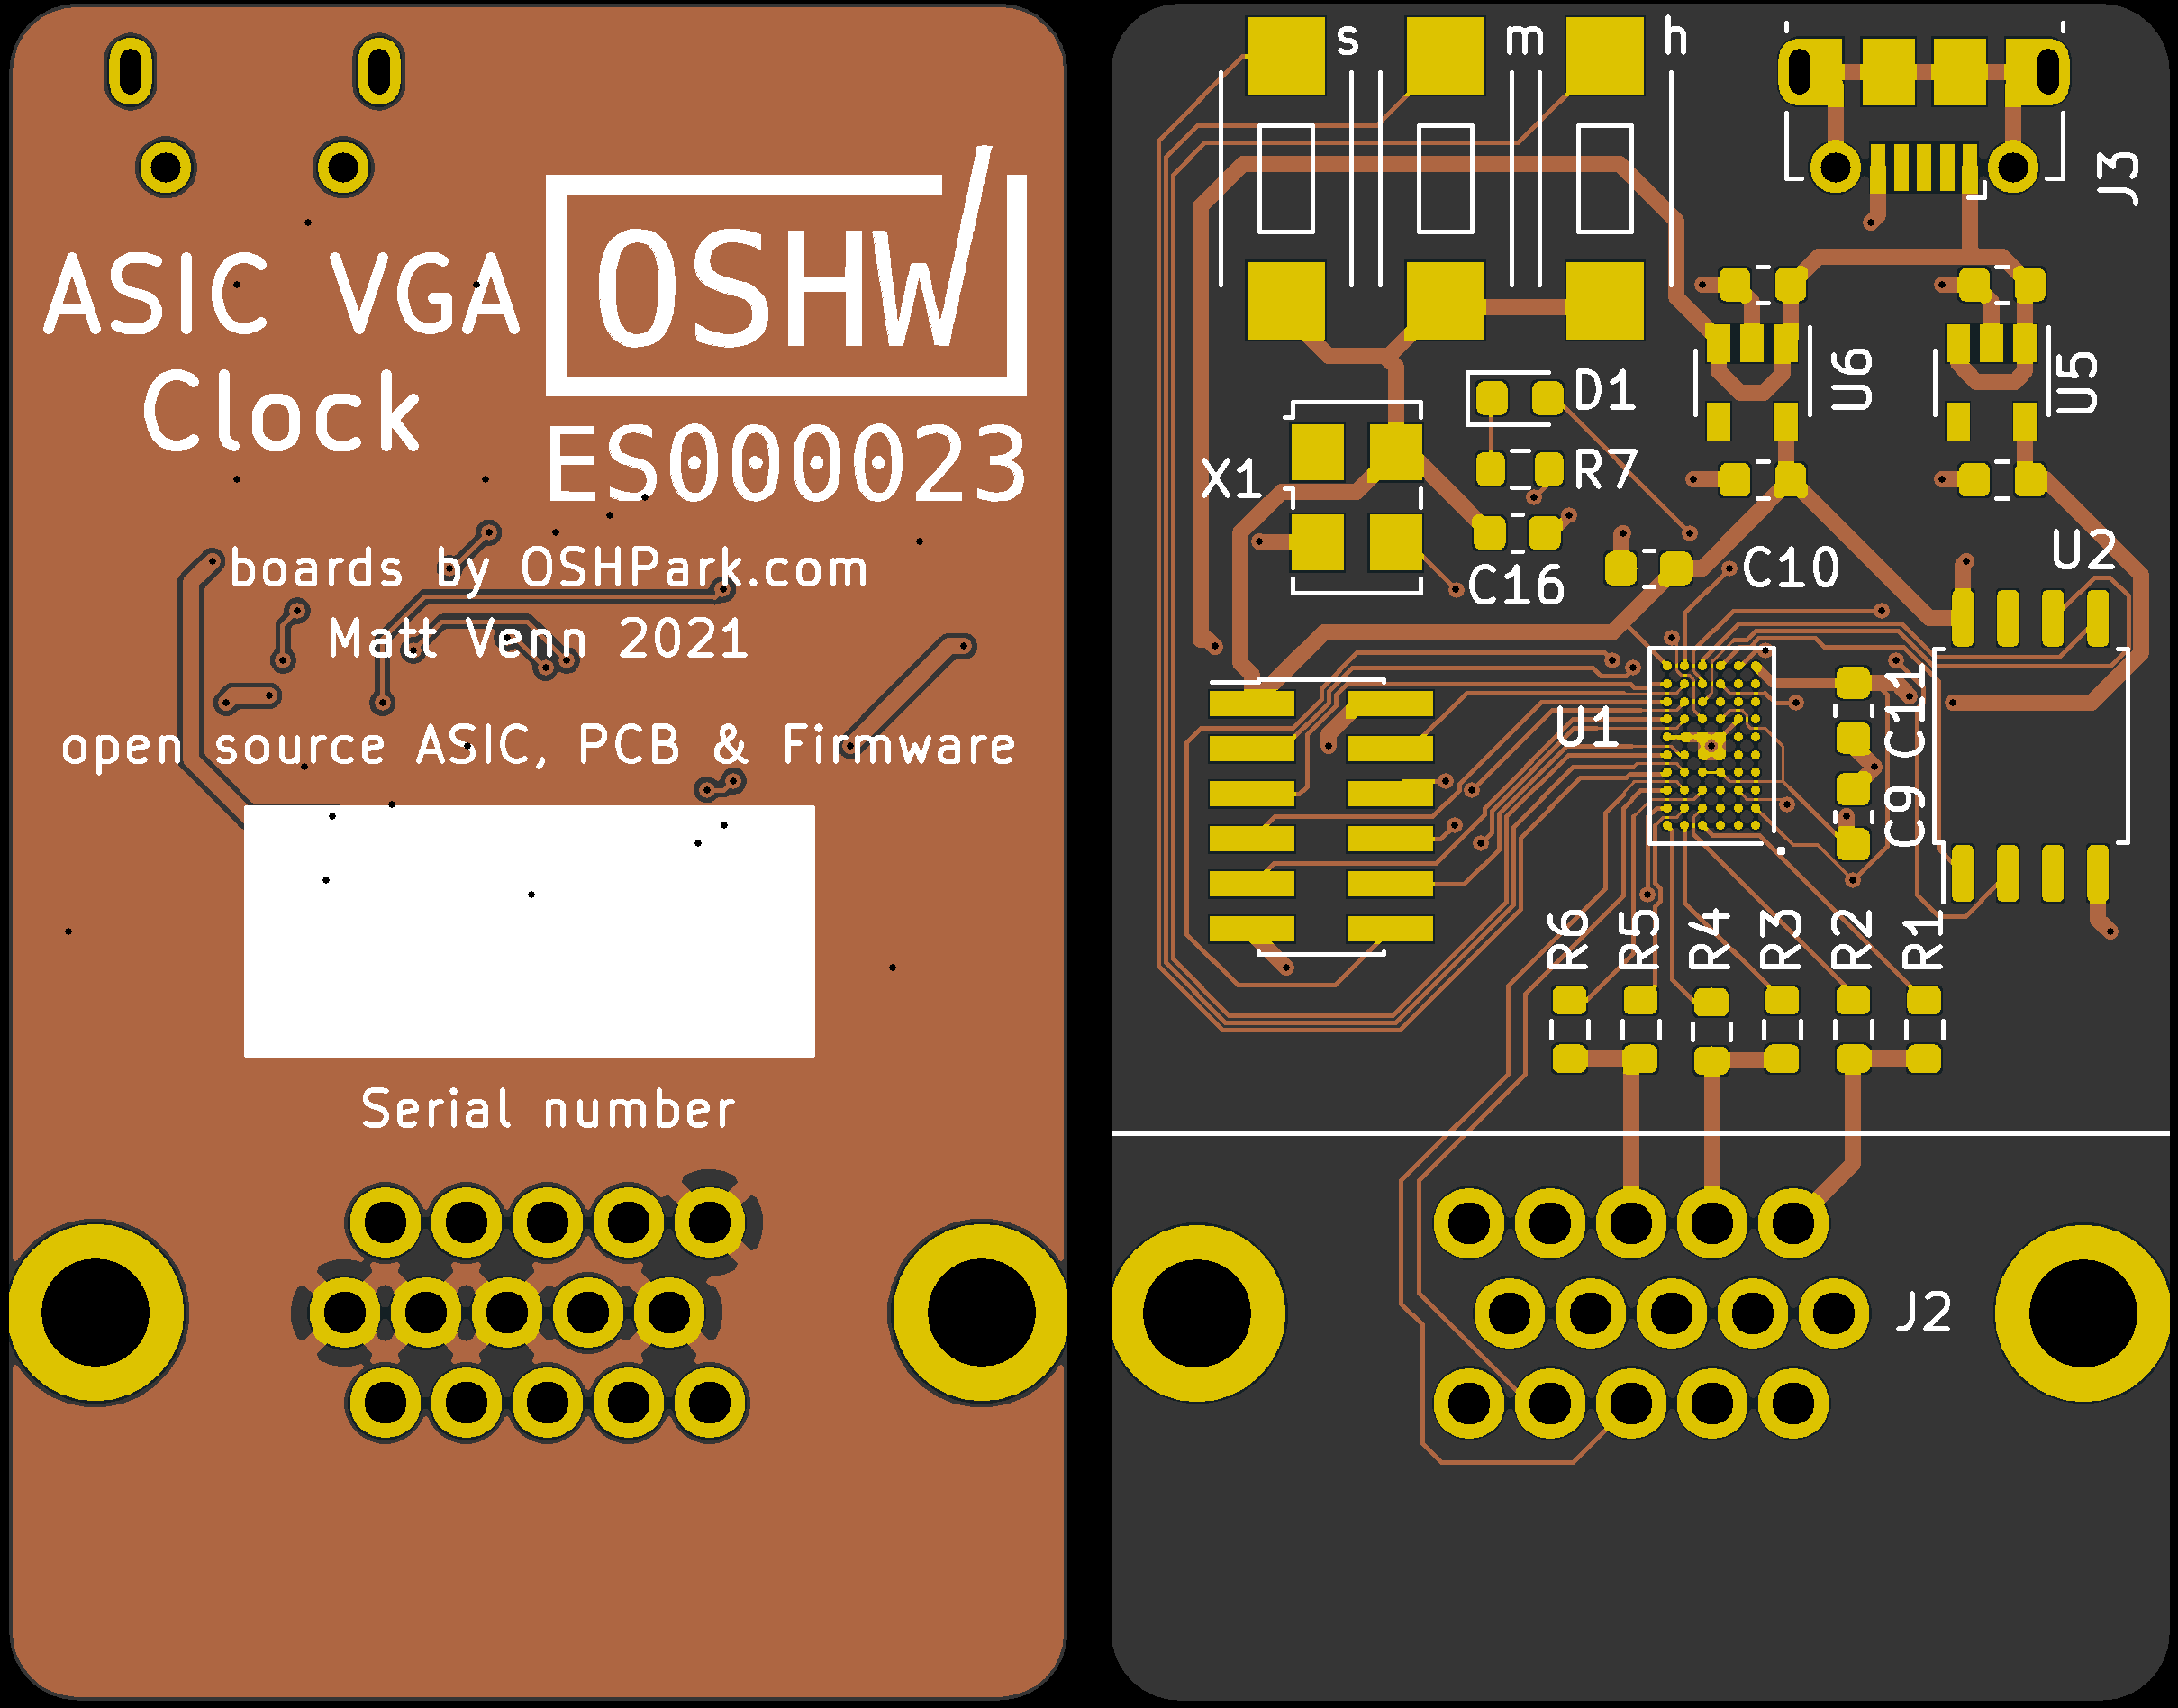 image from World's first certified open source hardware down to the chip level?